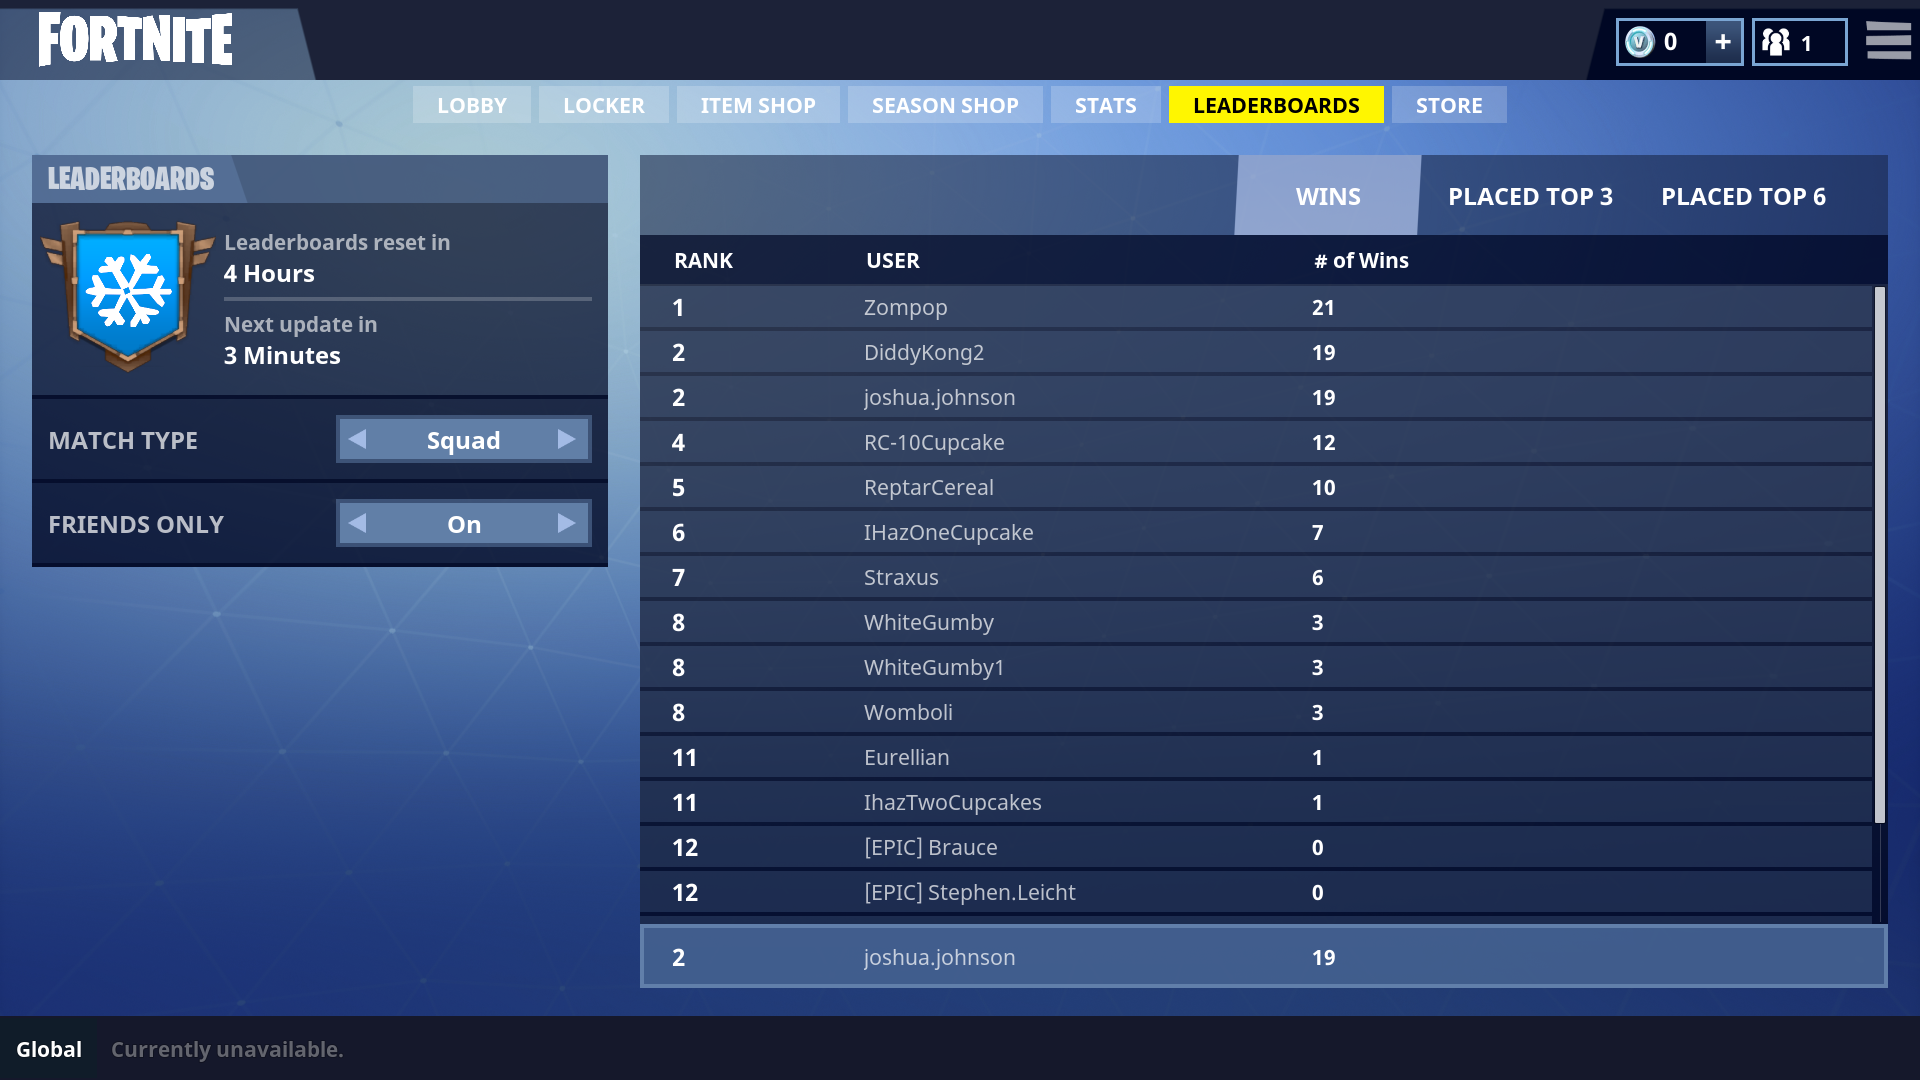 Fortnite%2Fblog%2Ffortnitemares-update-1-8-patch-notes%2FLeaderboards-1920x1080-a7c70496591871beaec0b6dd731b17b68ab55470